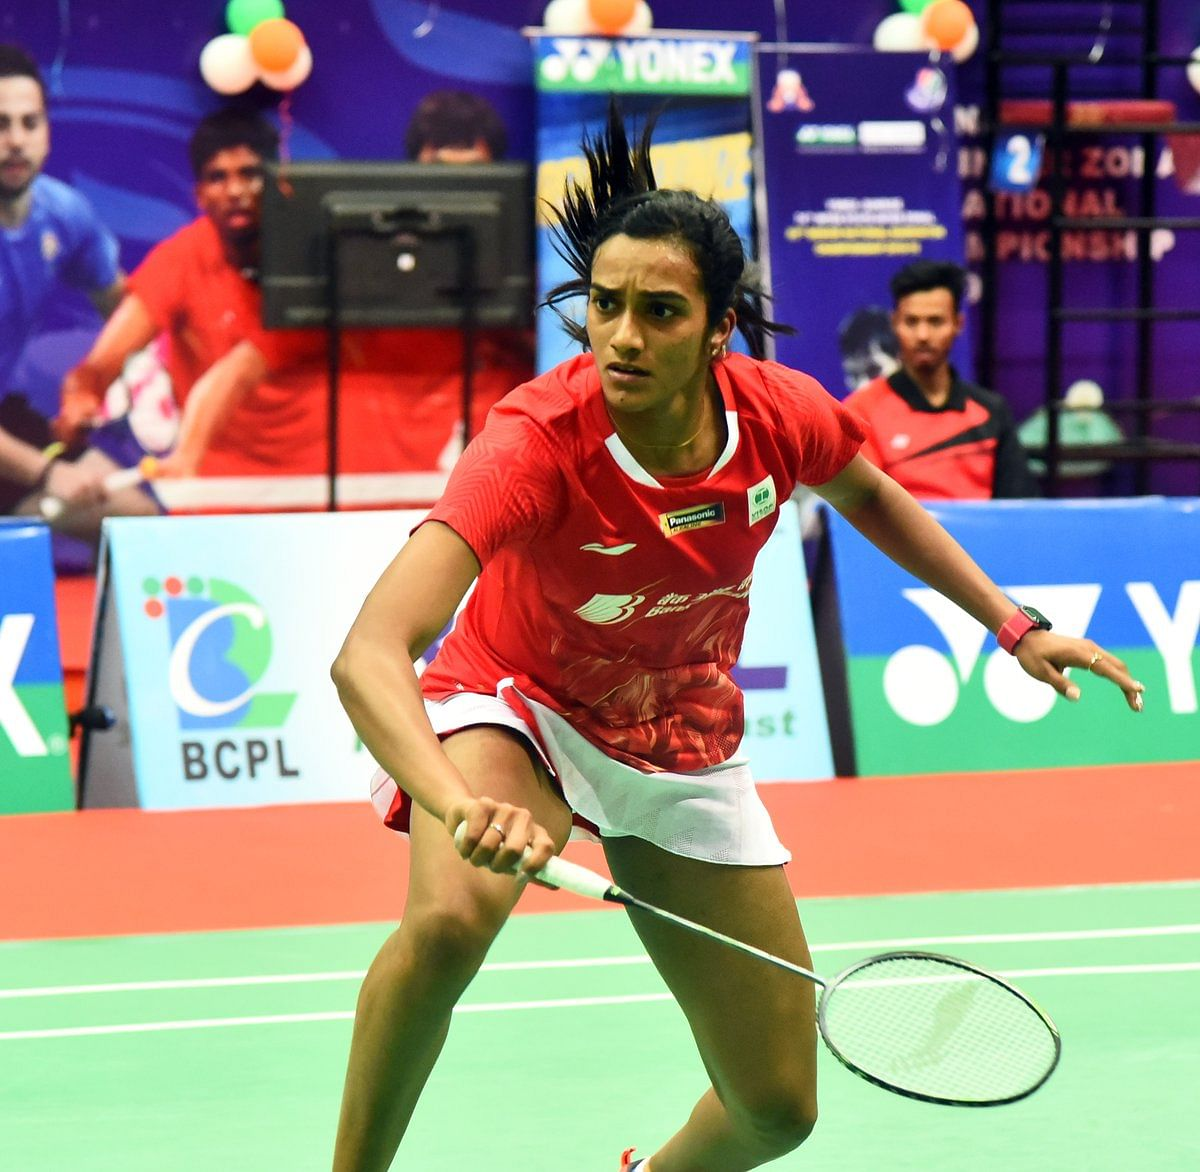 PV Sindhu in action during her first round defeat at the All England Championships 2019 against South Korea's Sung Ji Hyun.